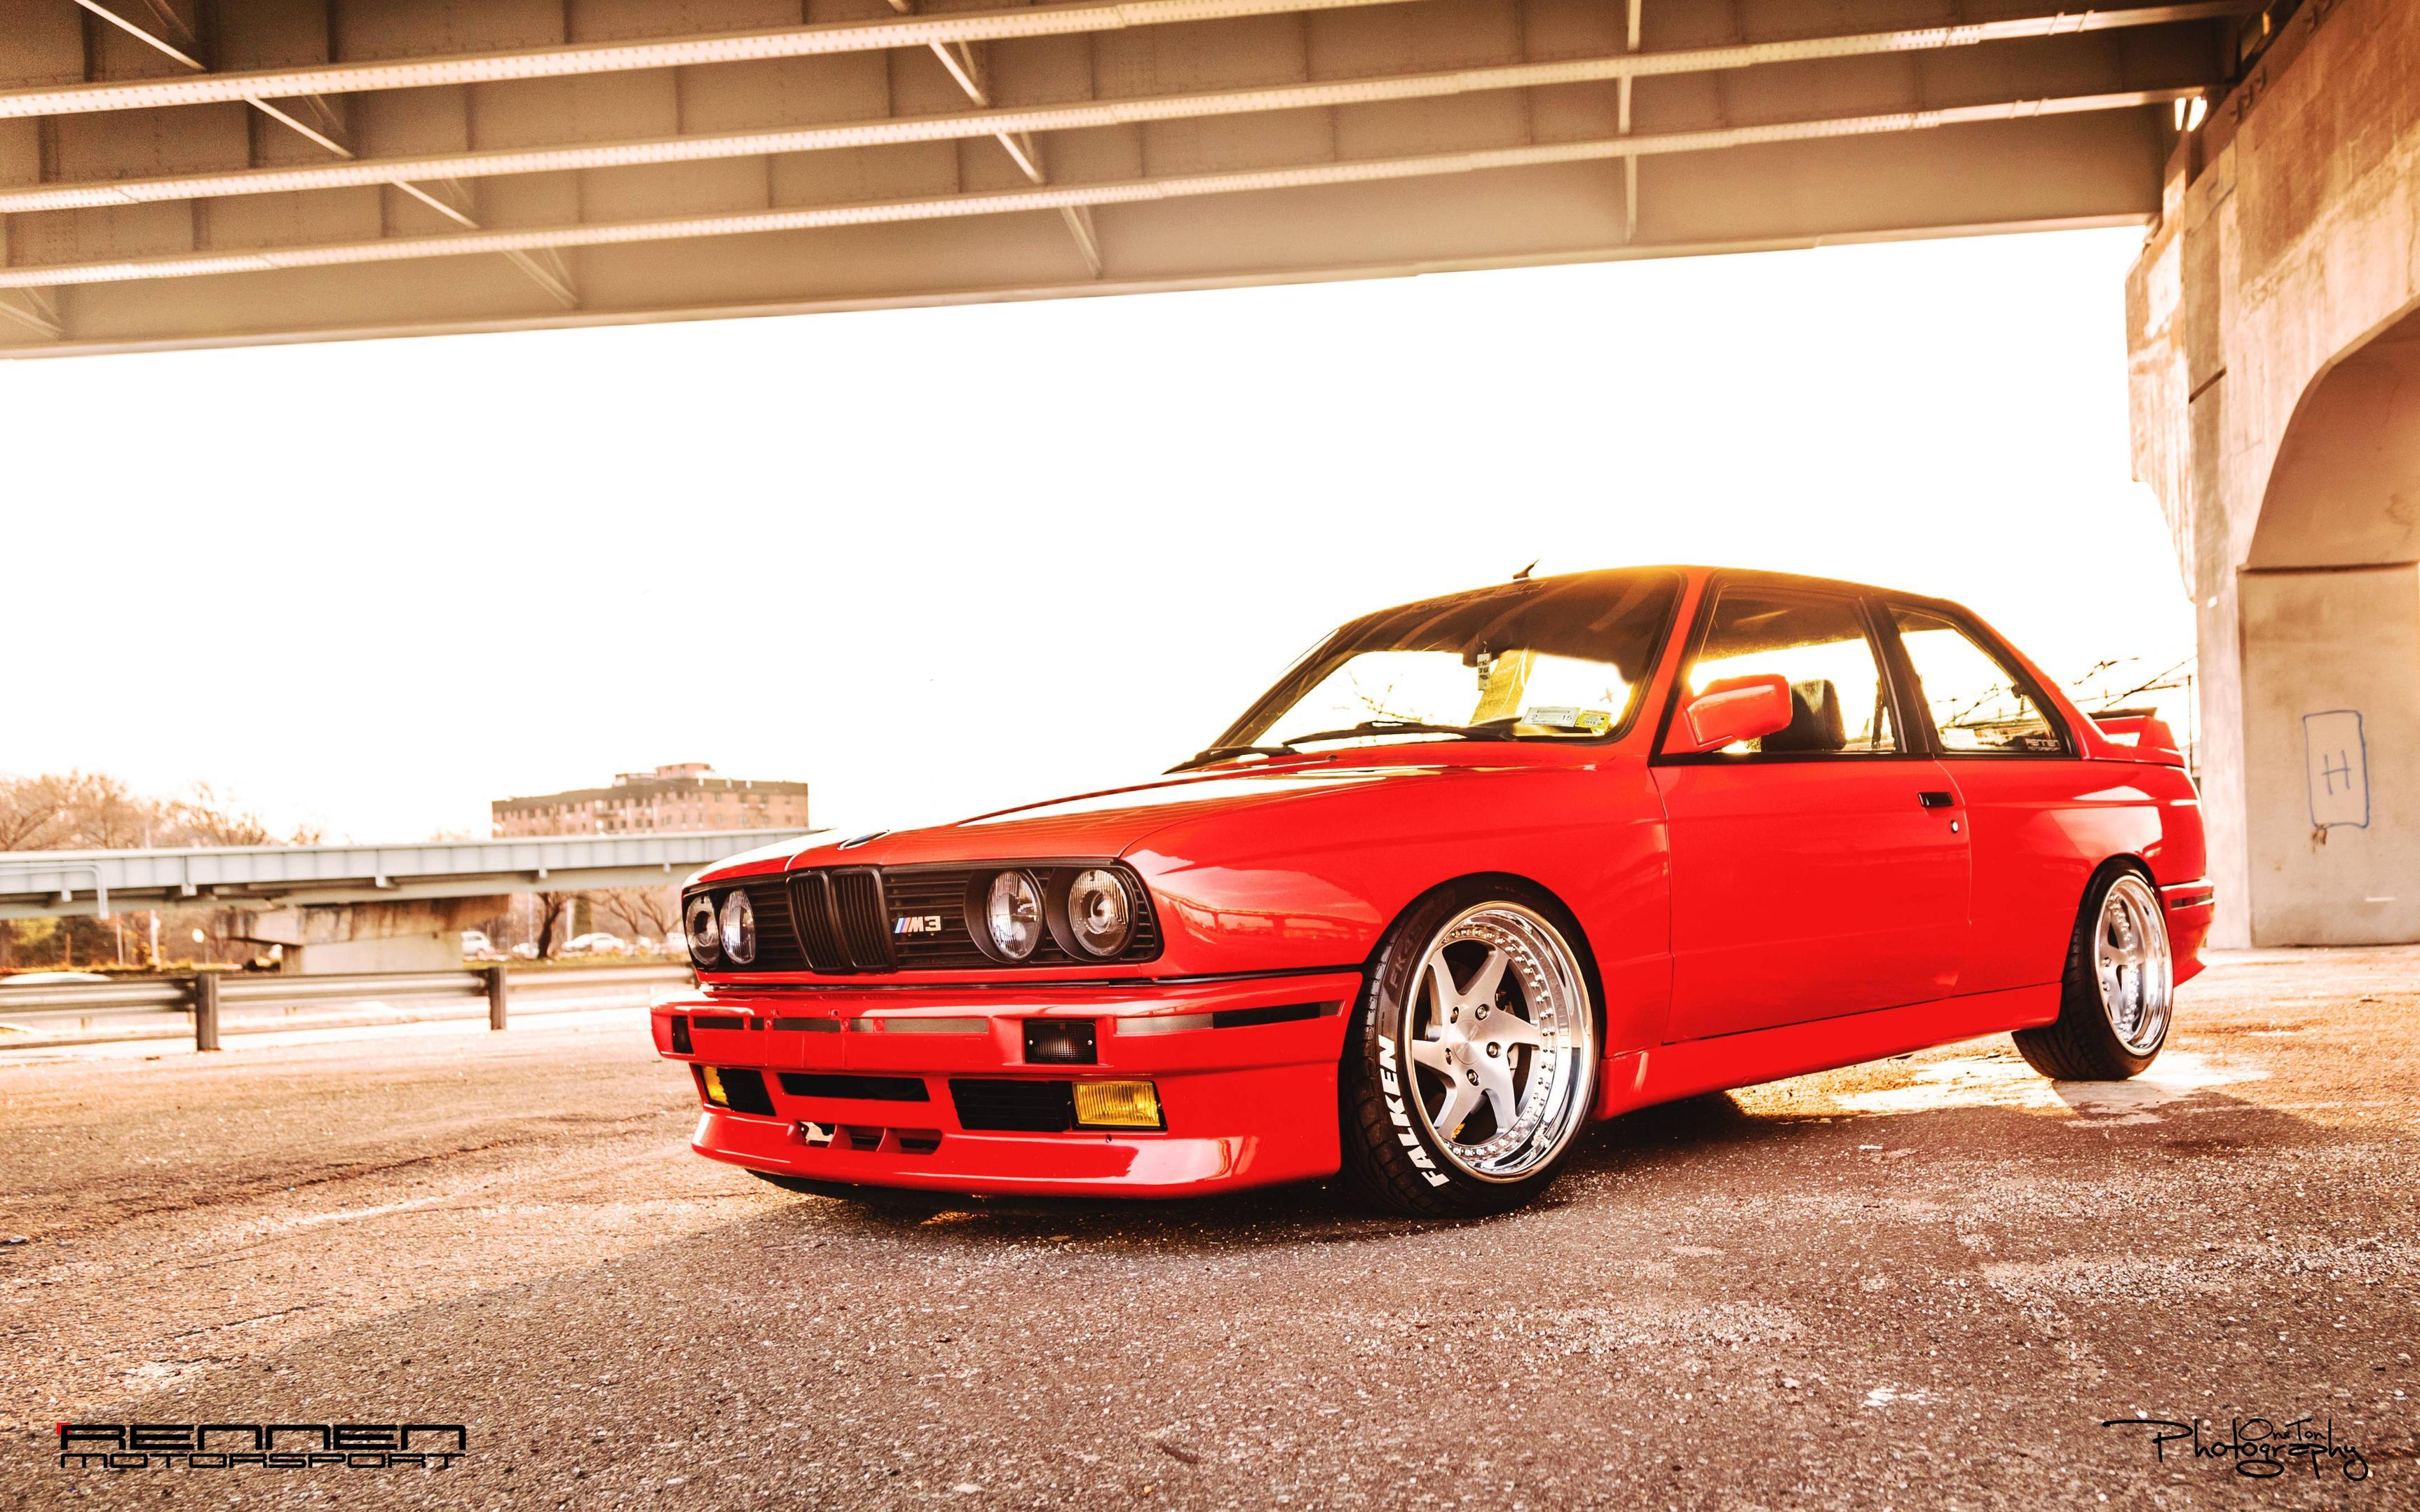 2016 Bmw E30 M3 Review Phone Wallpapers Automotivecool Bmw E30 M3 Imola Red 332030 Hd Wallpaper Backgrounds Download